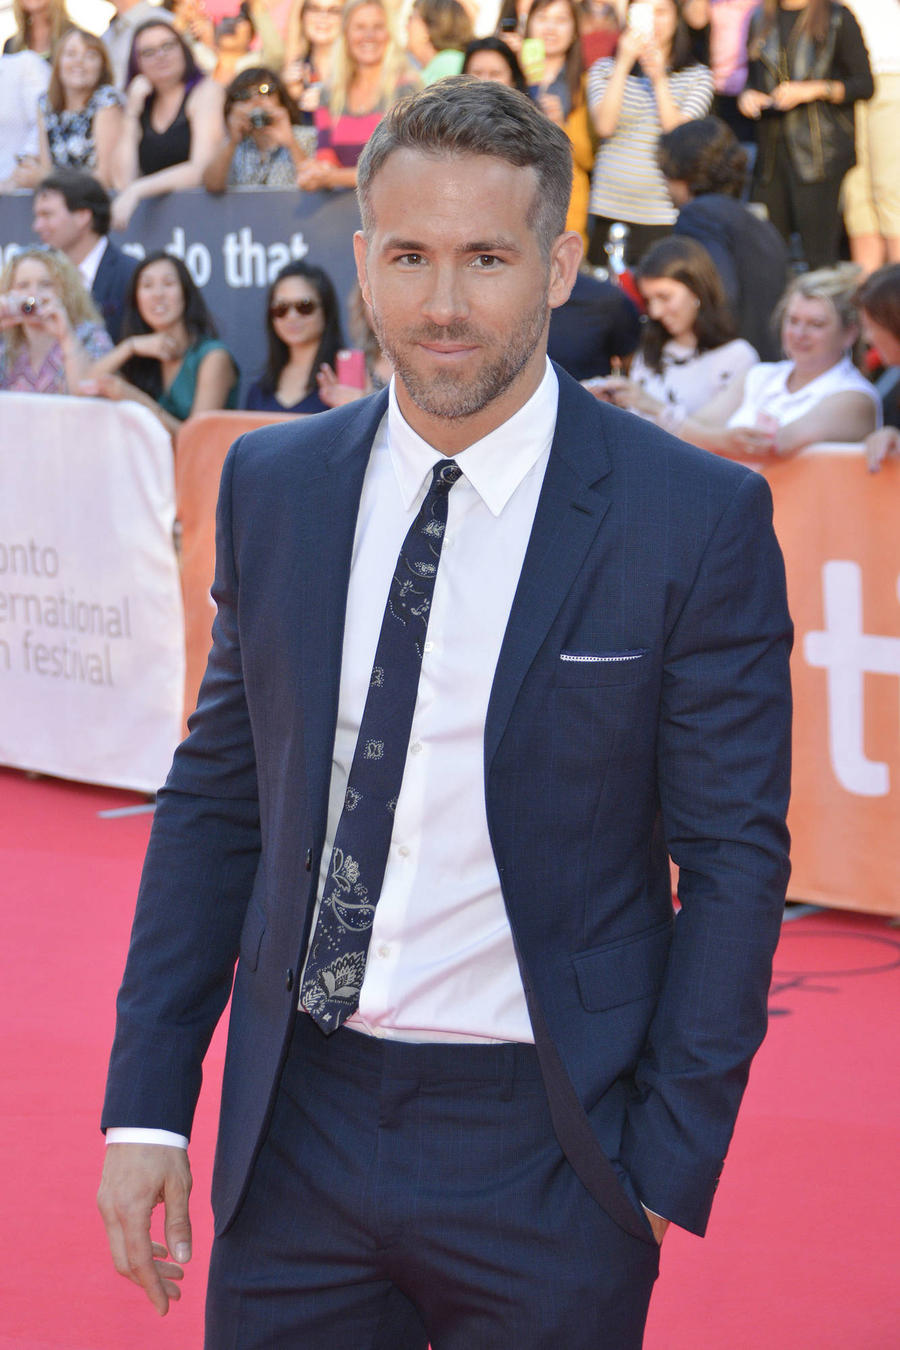 Ryan Reynolds Is New Face Of Piaget Watches